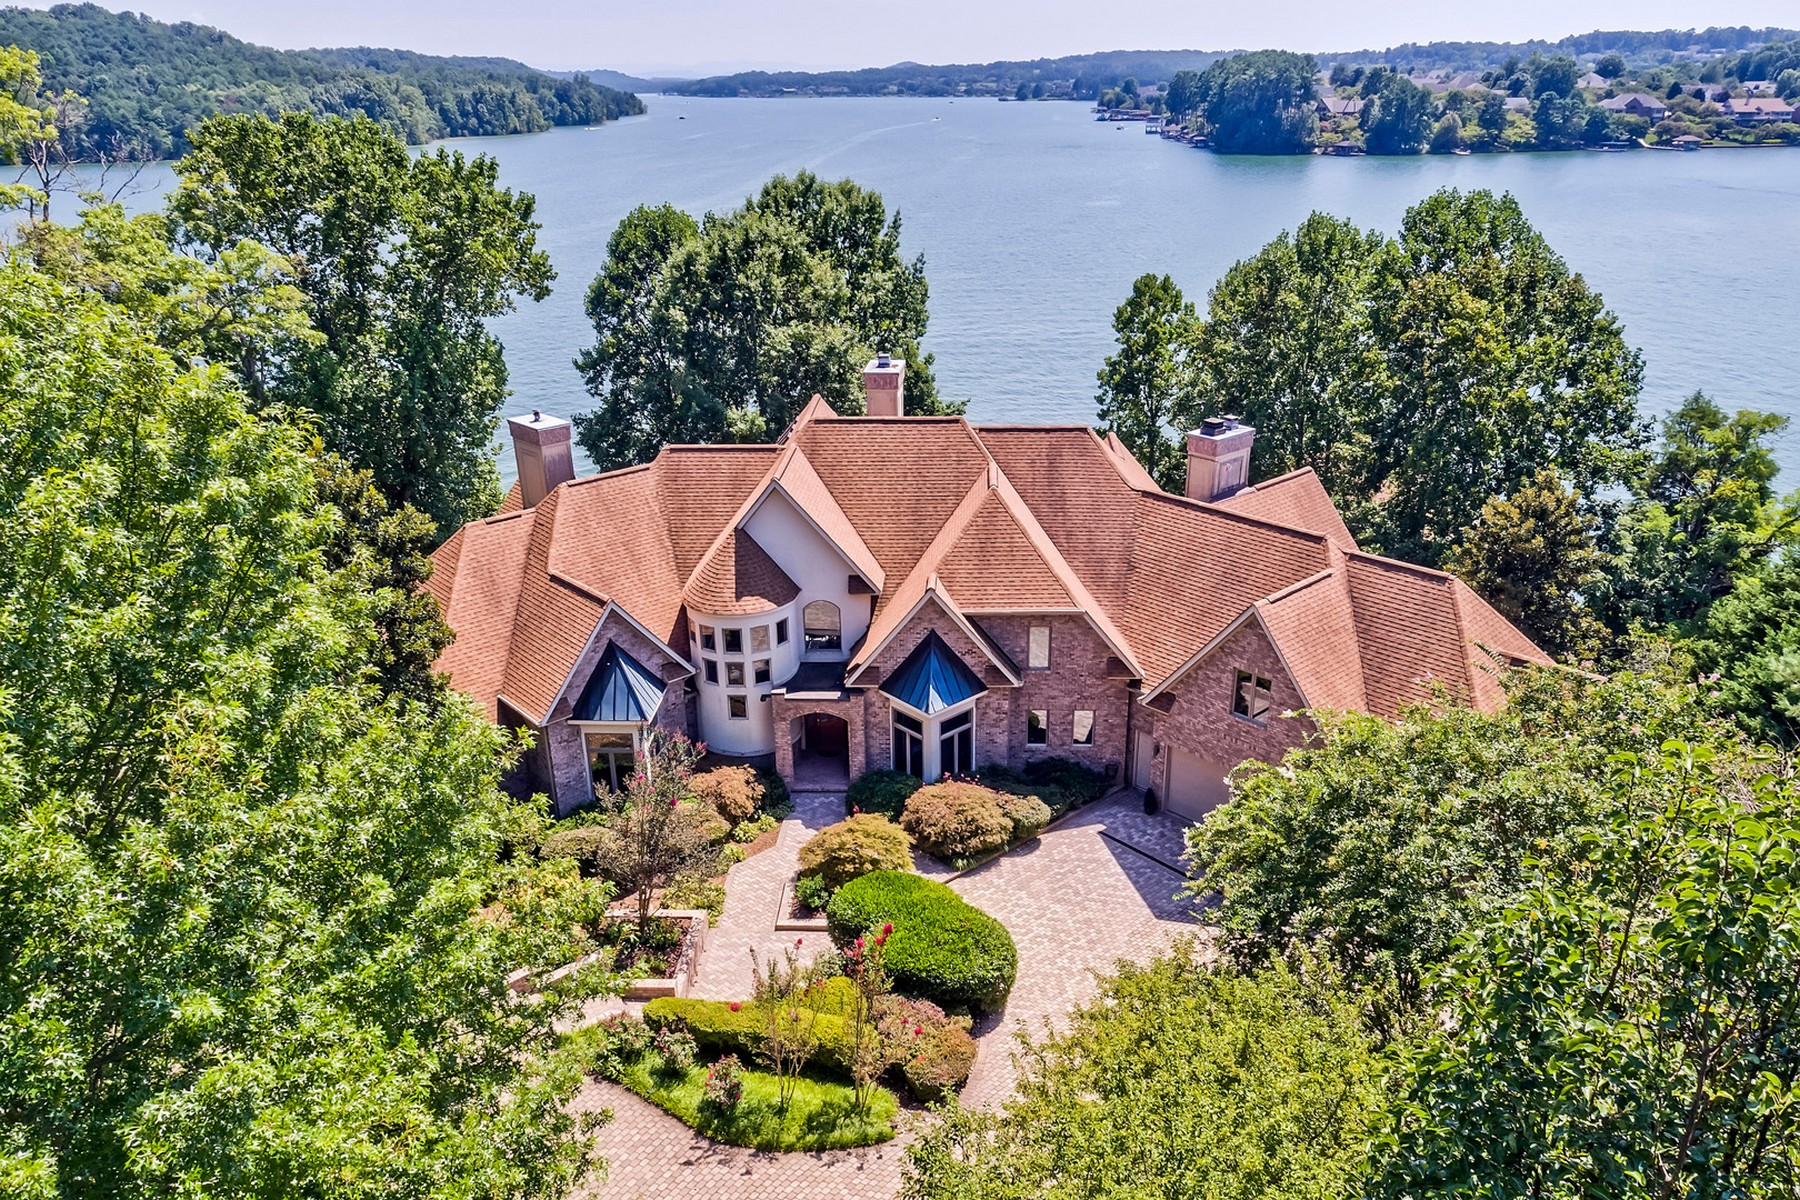 Maison unifamiliale pour l Vente à Lakefront Home With Majestic Views 234 Tecumseh Way Loudon, Tennessee 37774 États-Unis